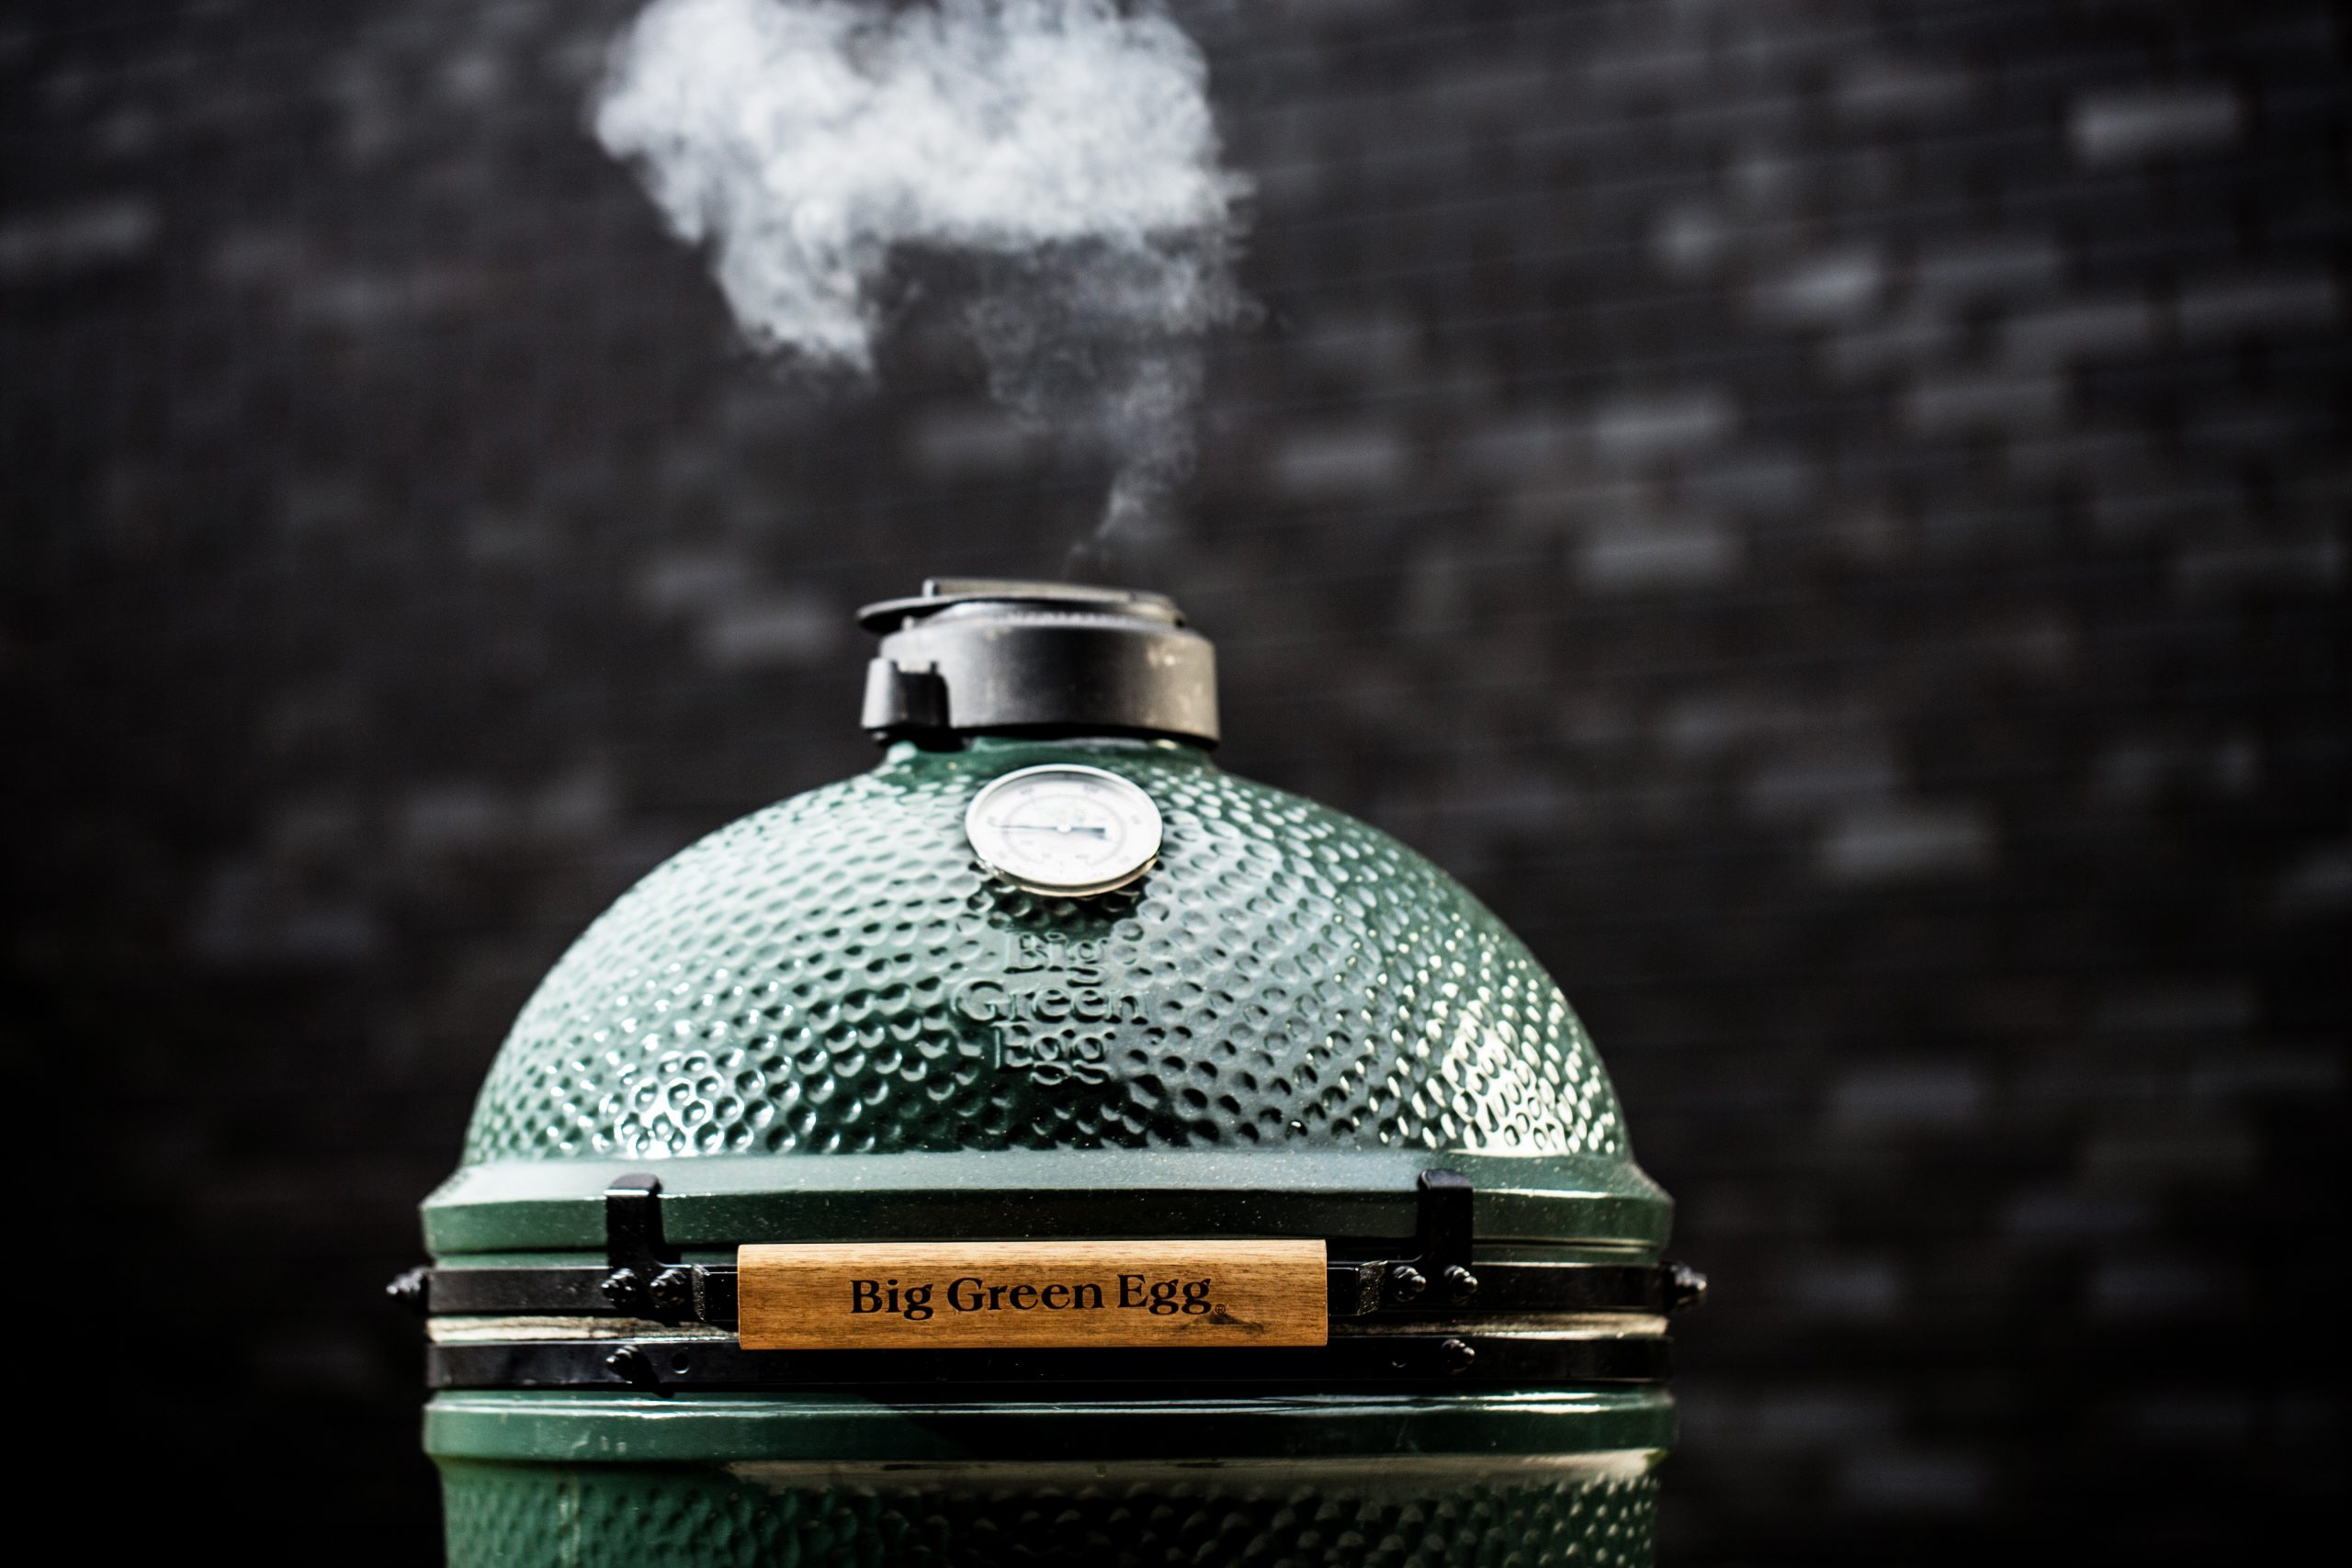 BigGreenEgg item (1)